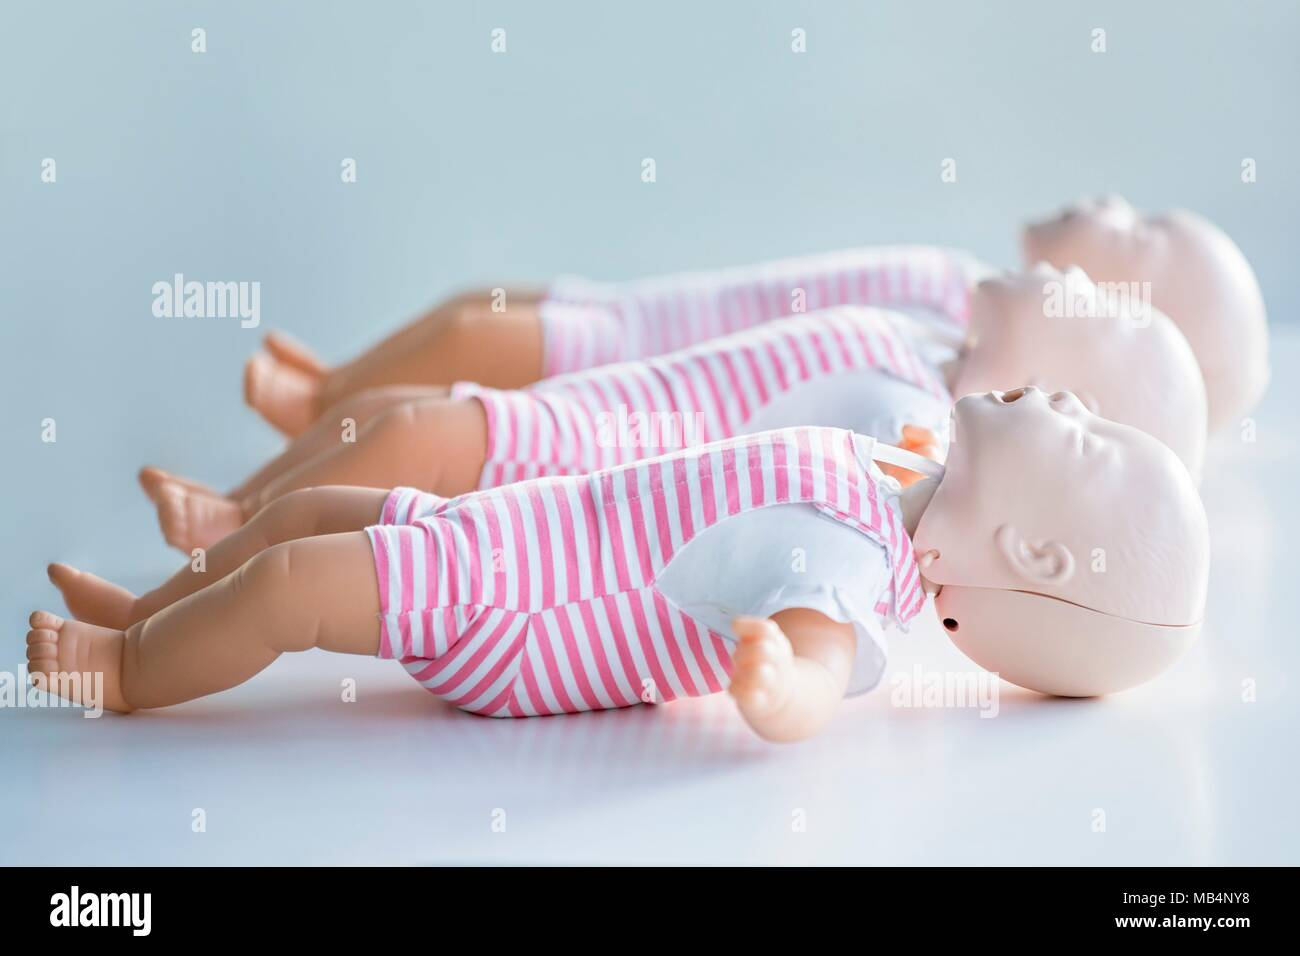 Infant CPR training dummies. - Stock Image